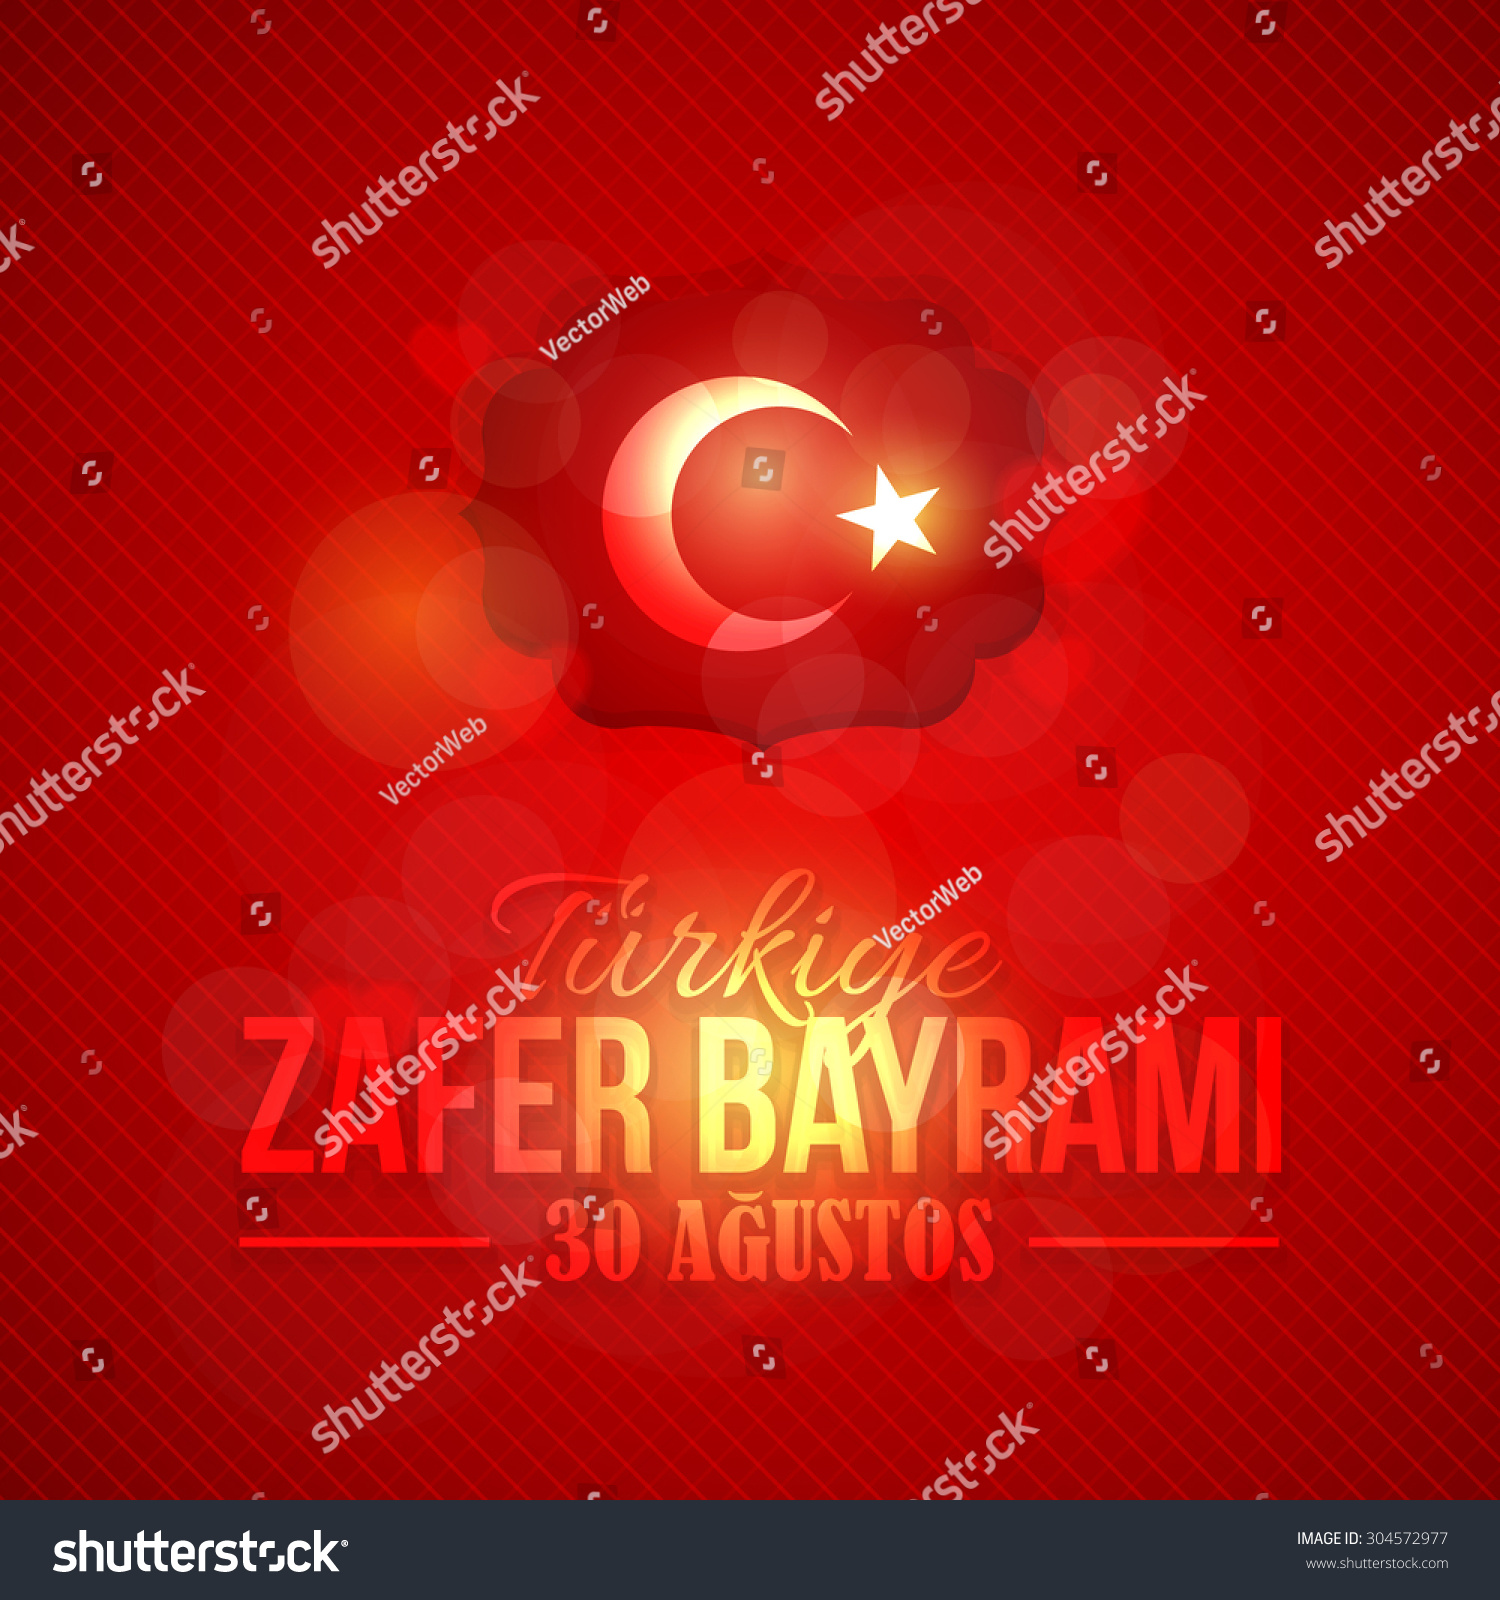 Republic turkey lighting card greeting message stock vector republic of turkey lighting card and greeting message poster badges english august 30 kristyandbryce Images